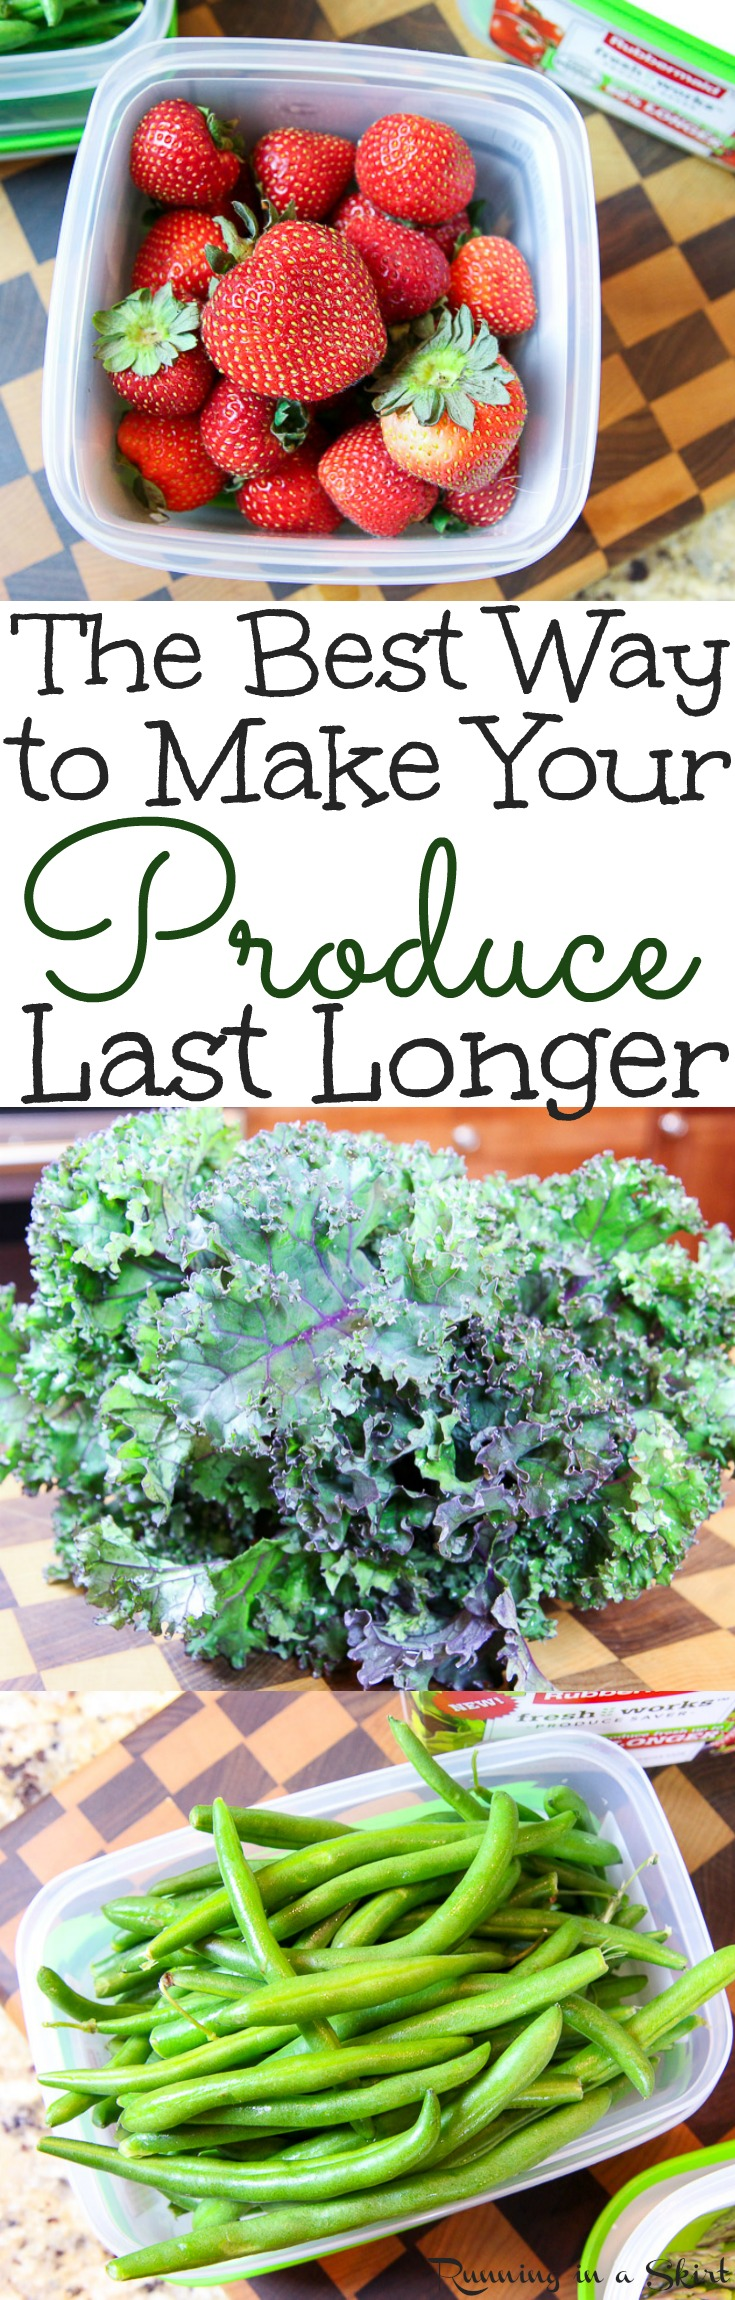 The Best Way to Make Your Produce Last Longer - The perfect produce storage ideas and tips for kitchens.  Includes how to store fruits, vegetables and veggies in refrigerators for a long life. / Running in a Skirt via @juliewunder